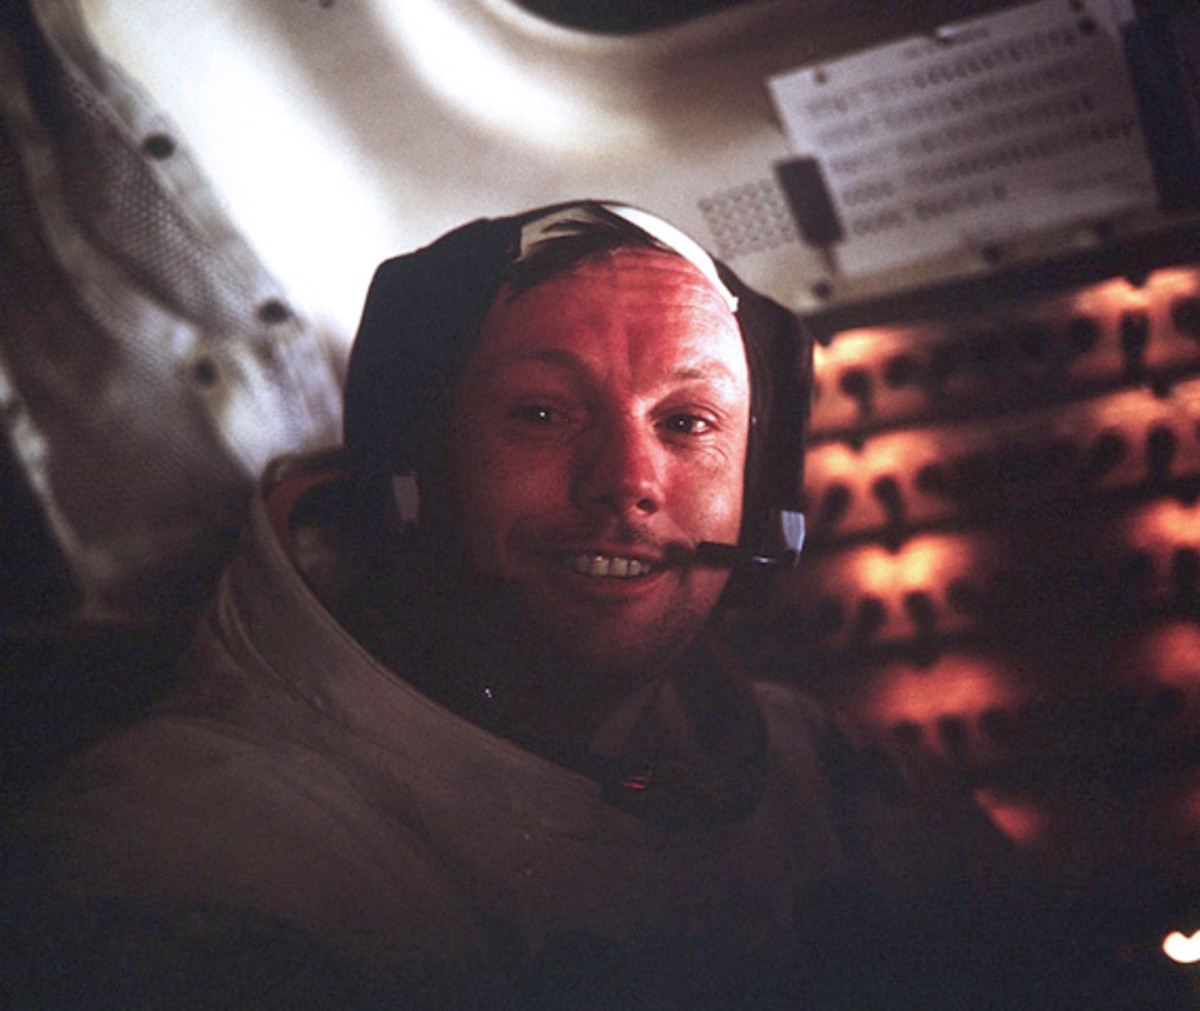 neil-armstrong-first-man-on-the-moon-apollo-11-01 copy